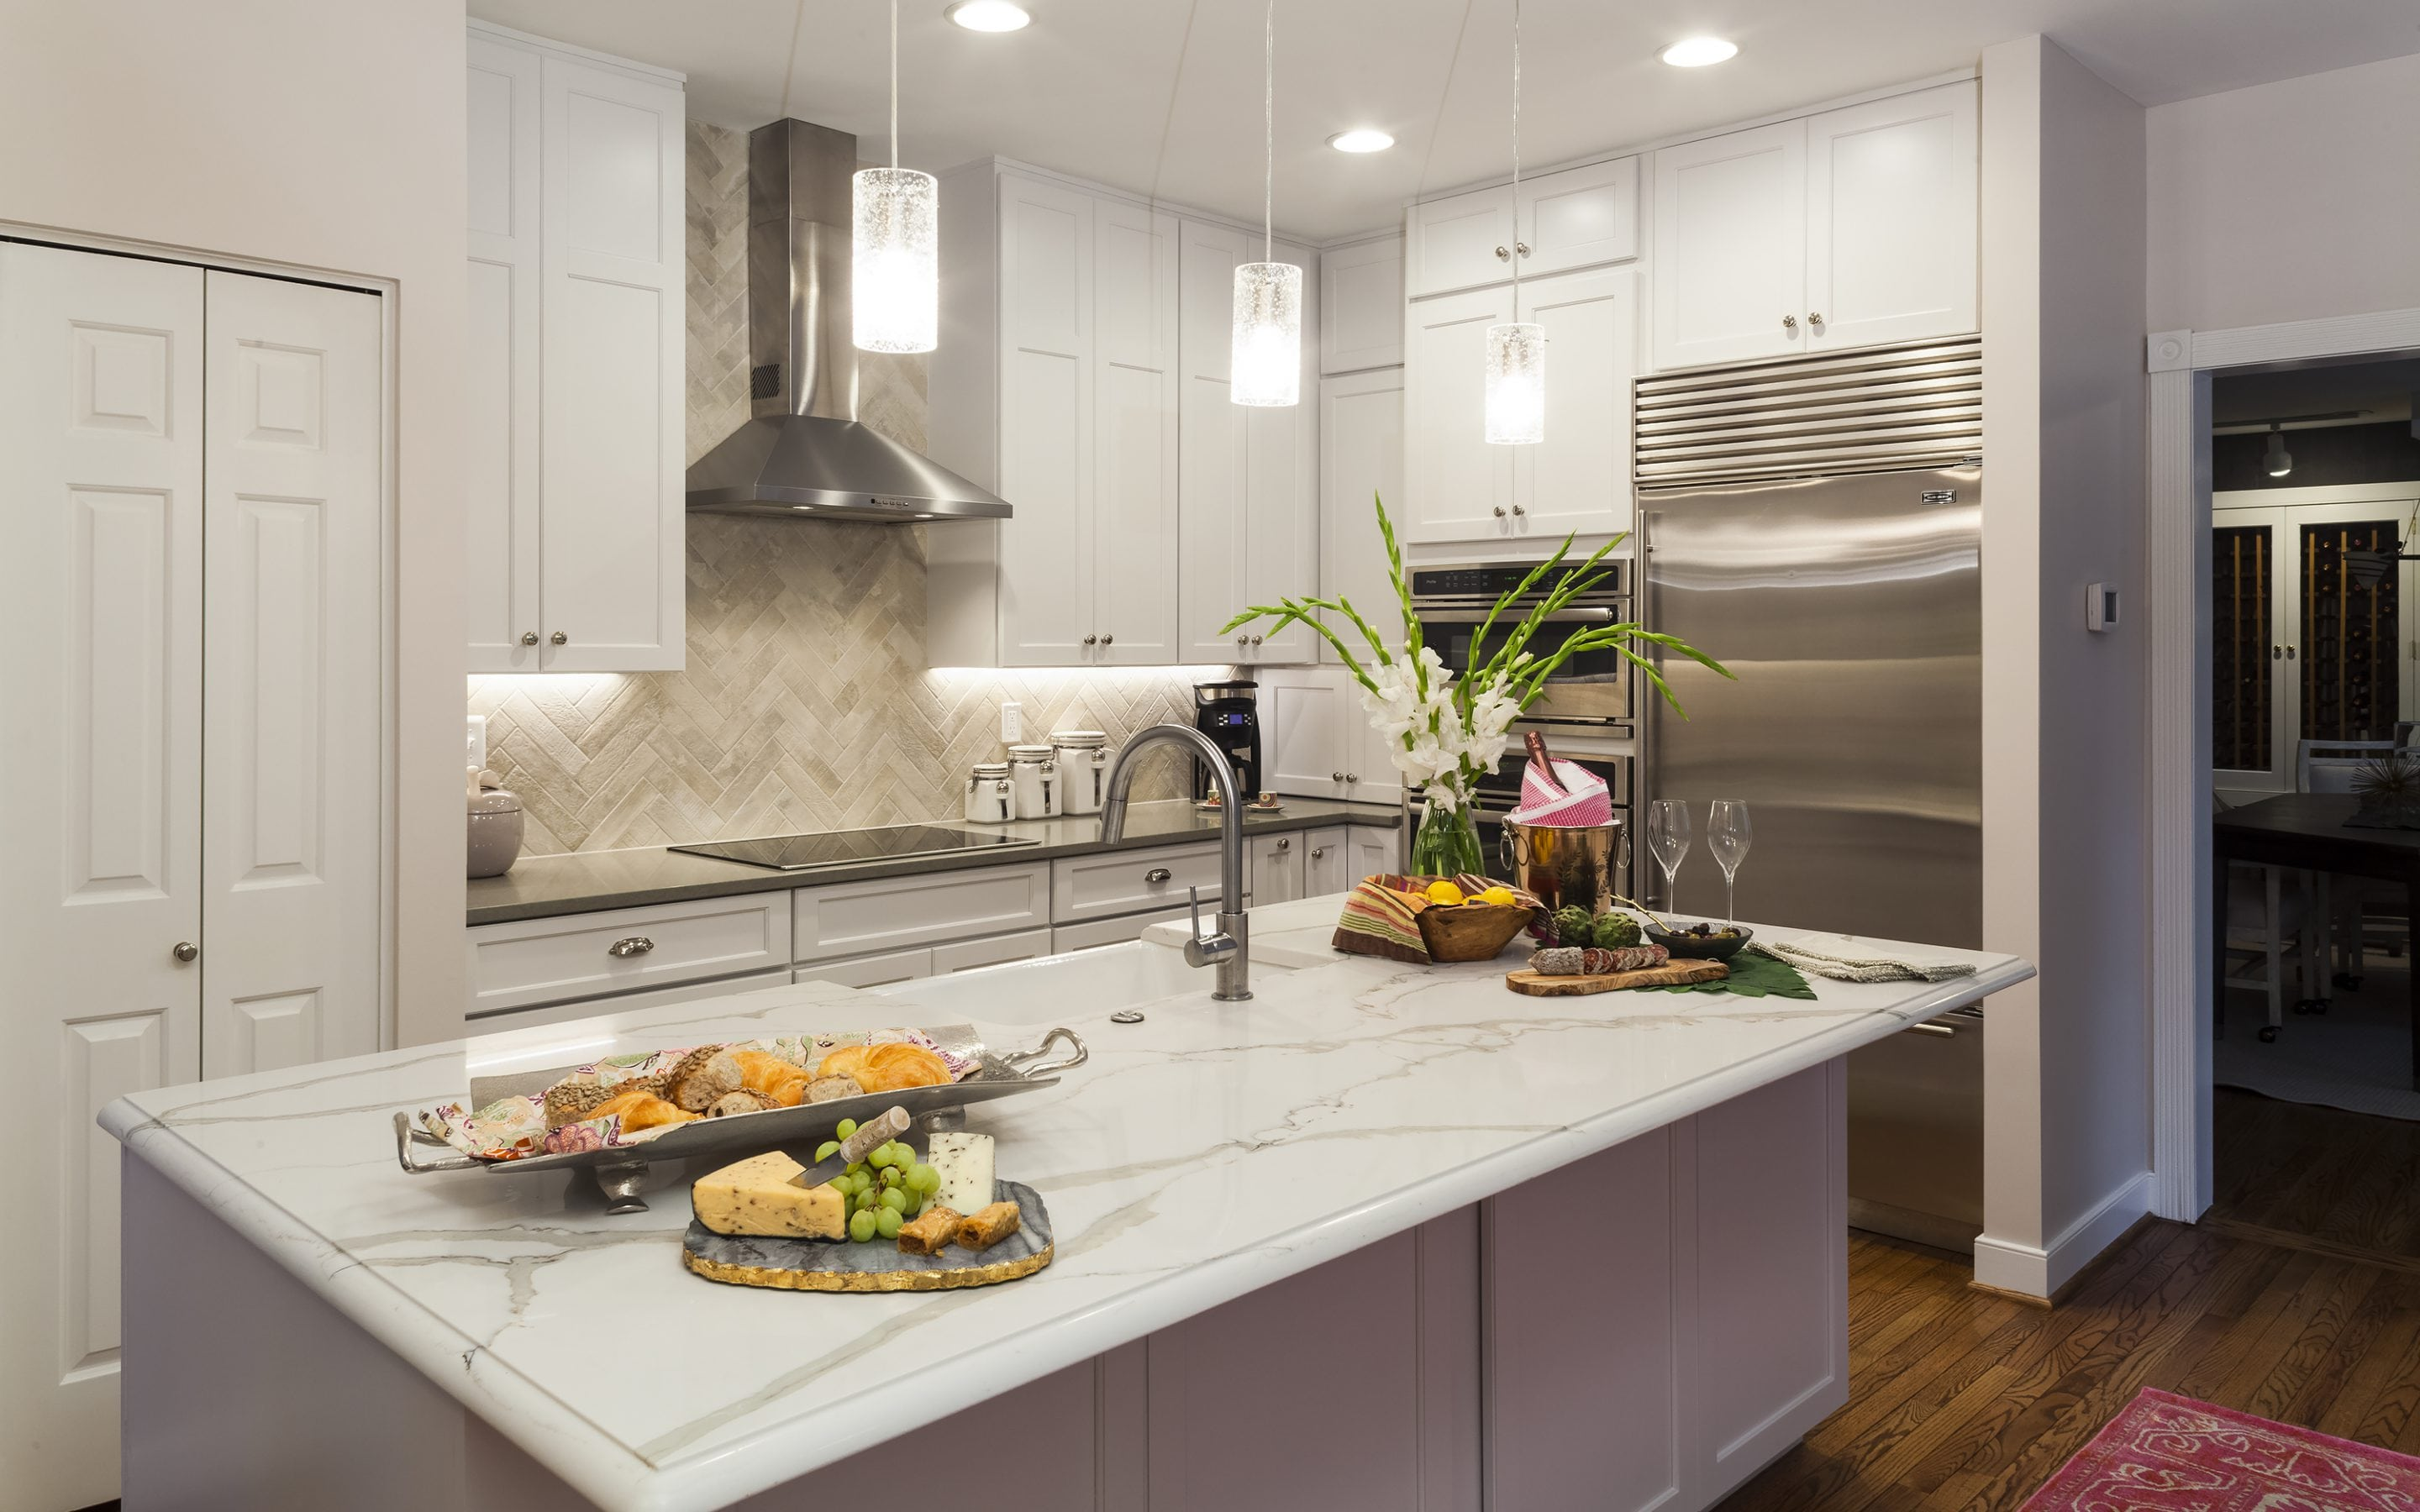 home remodeling in ellicott city, columbia, howard county maryland